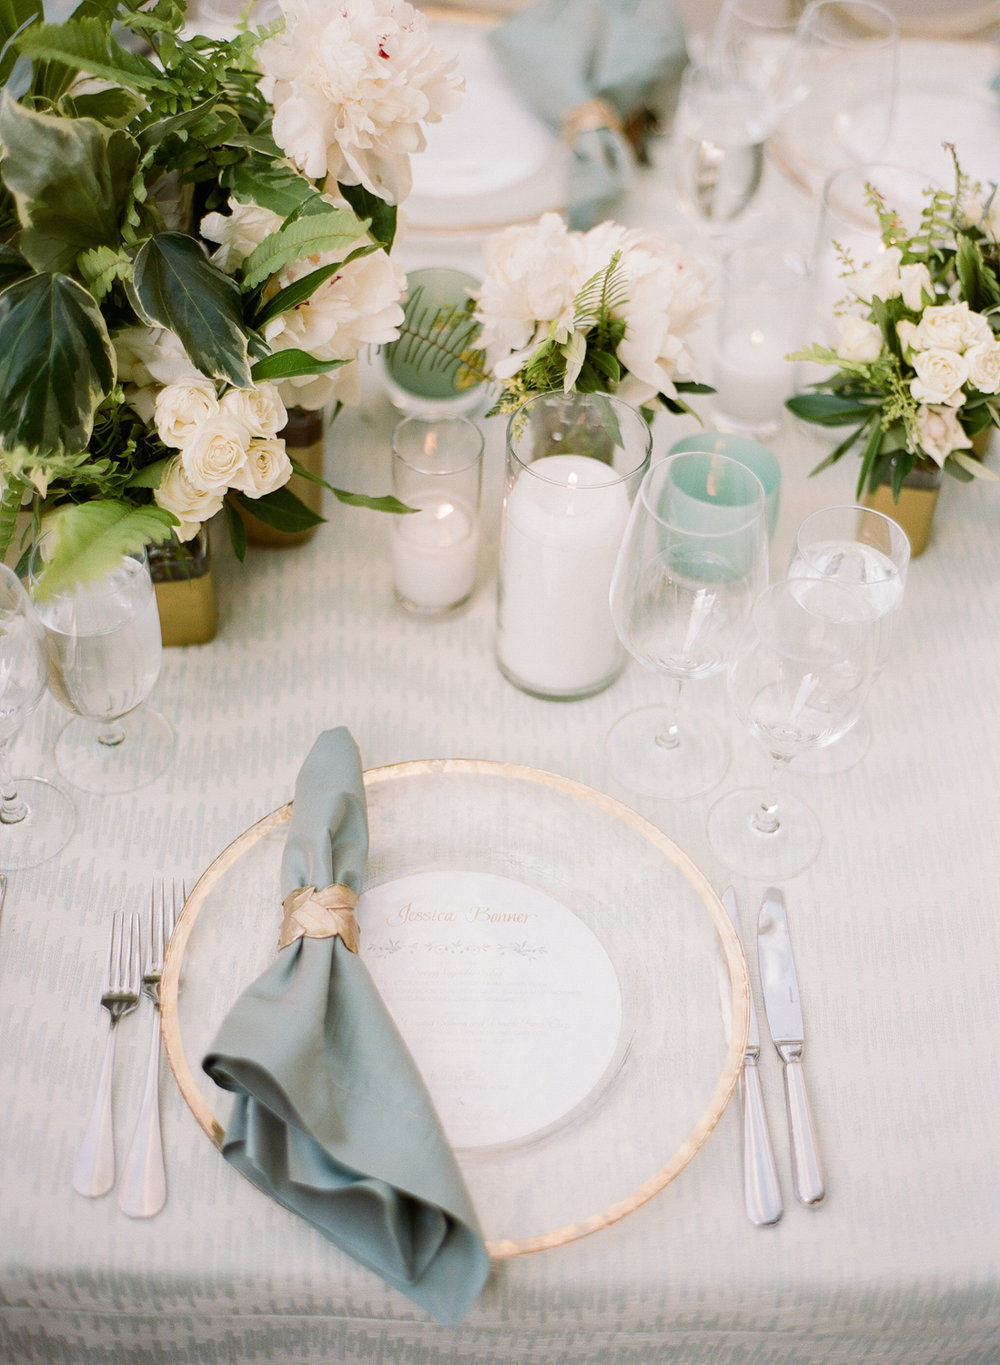 Glass table settings r trimmed in gold, with sea foam napkins and white floral centerpieces; Sylvie Gil Photography